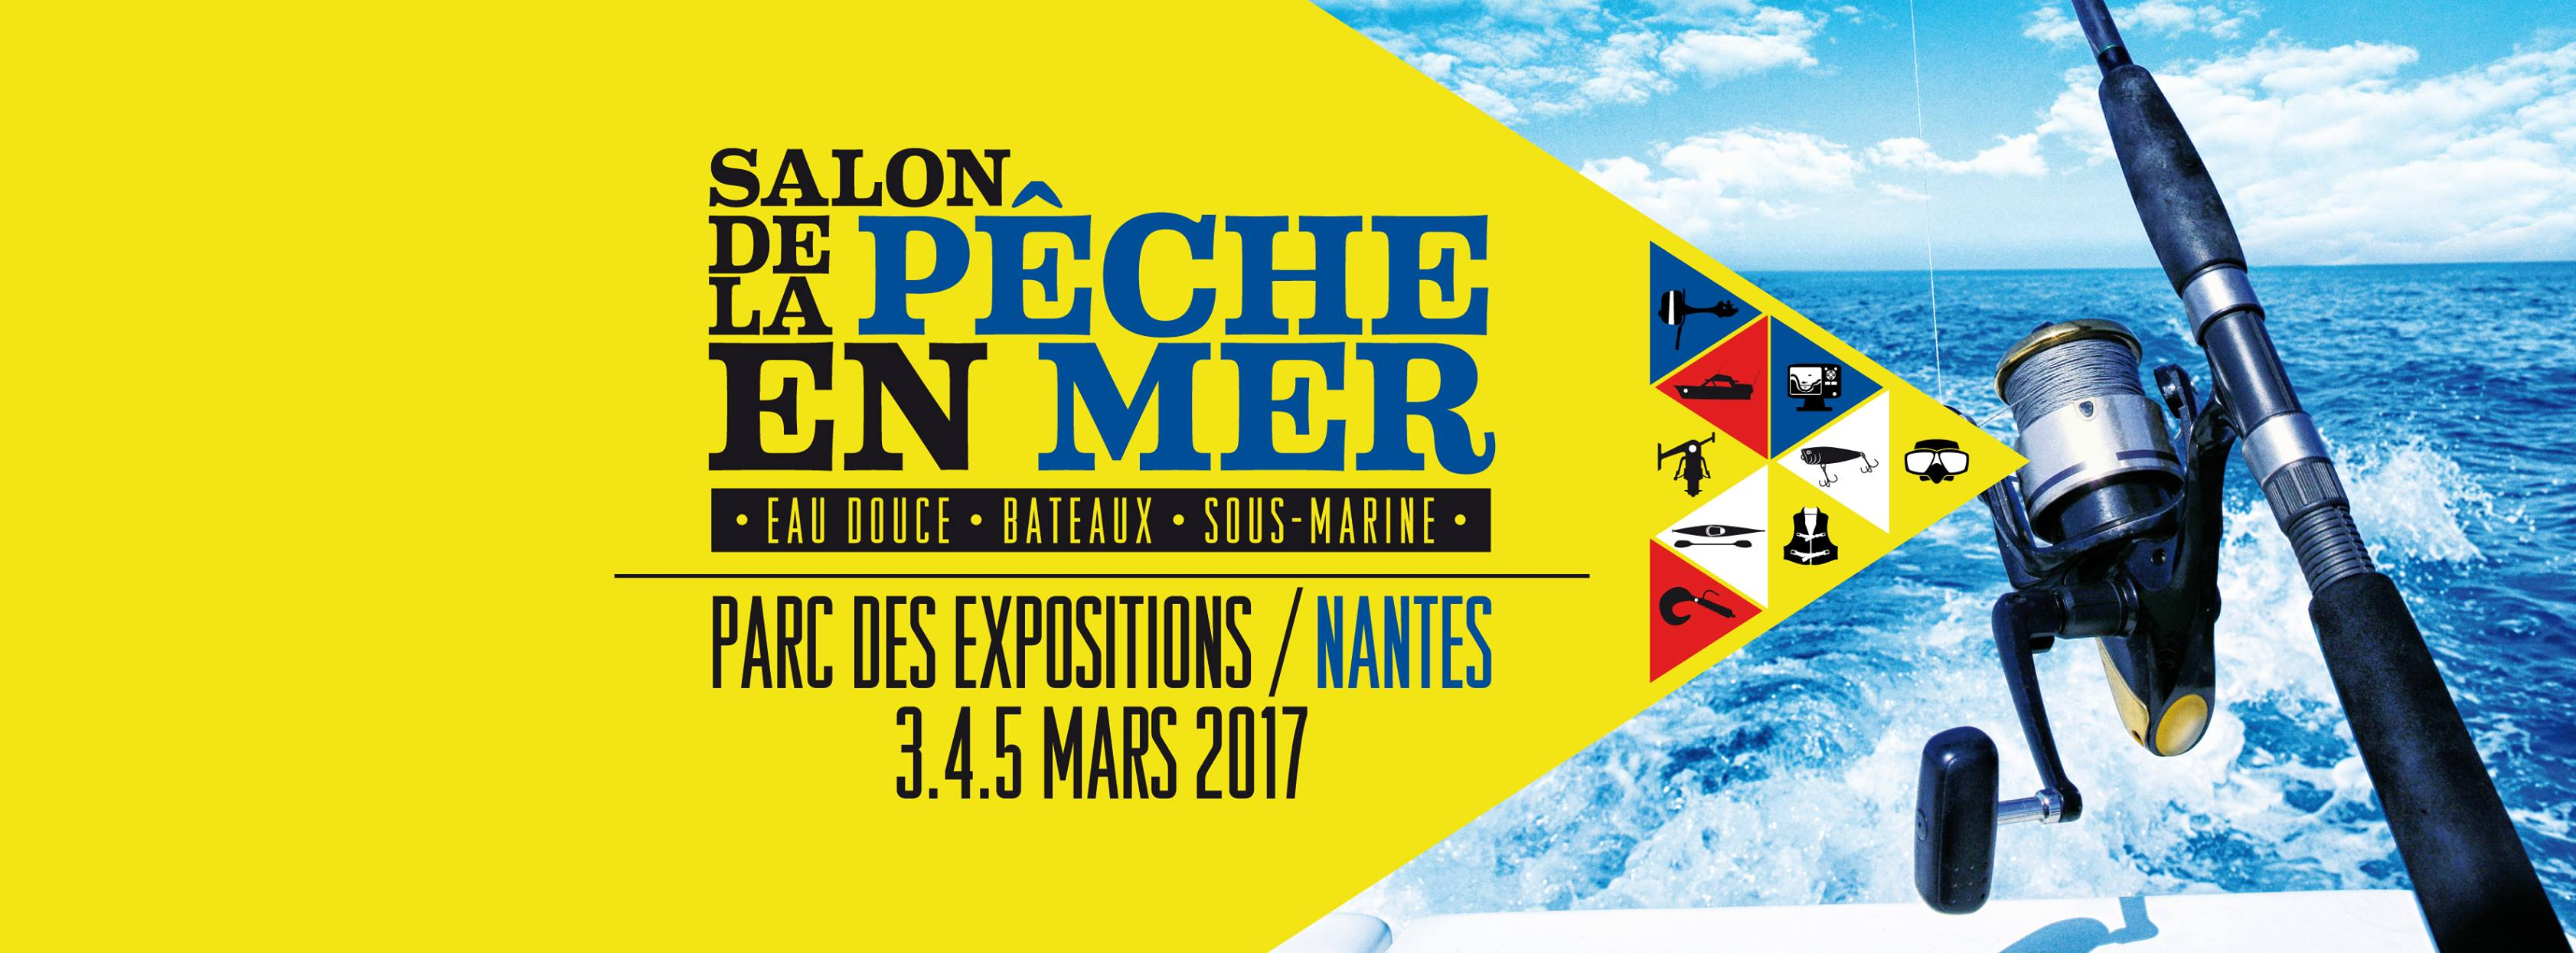 Salon Peche Nantes Salon De La Pêche En Mer 2017 La Pêche Technique